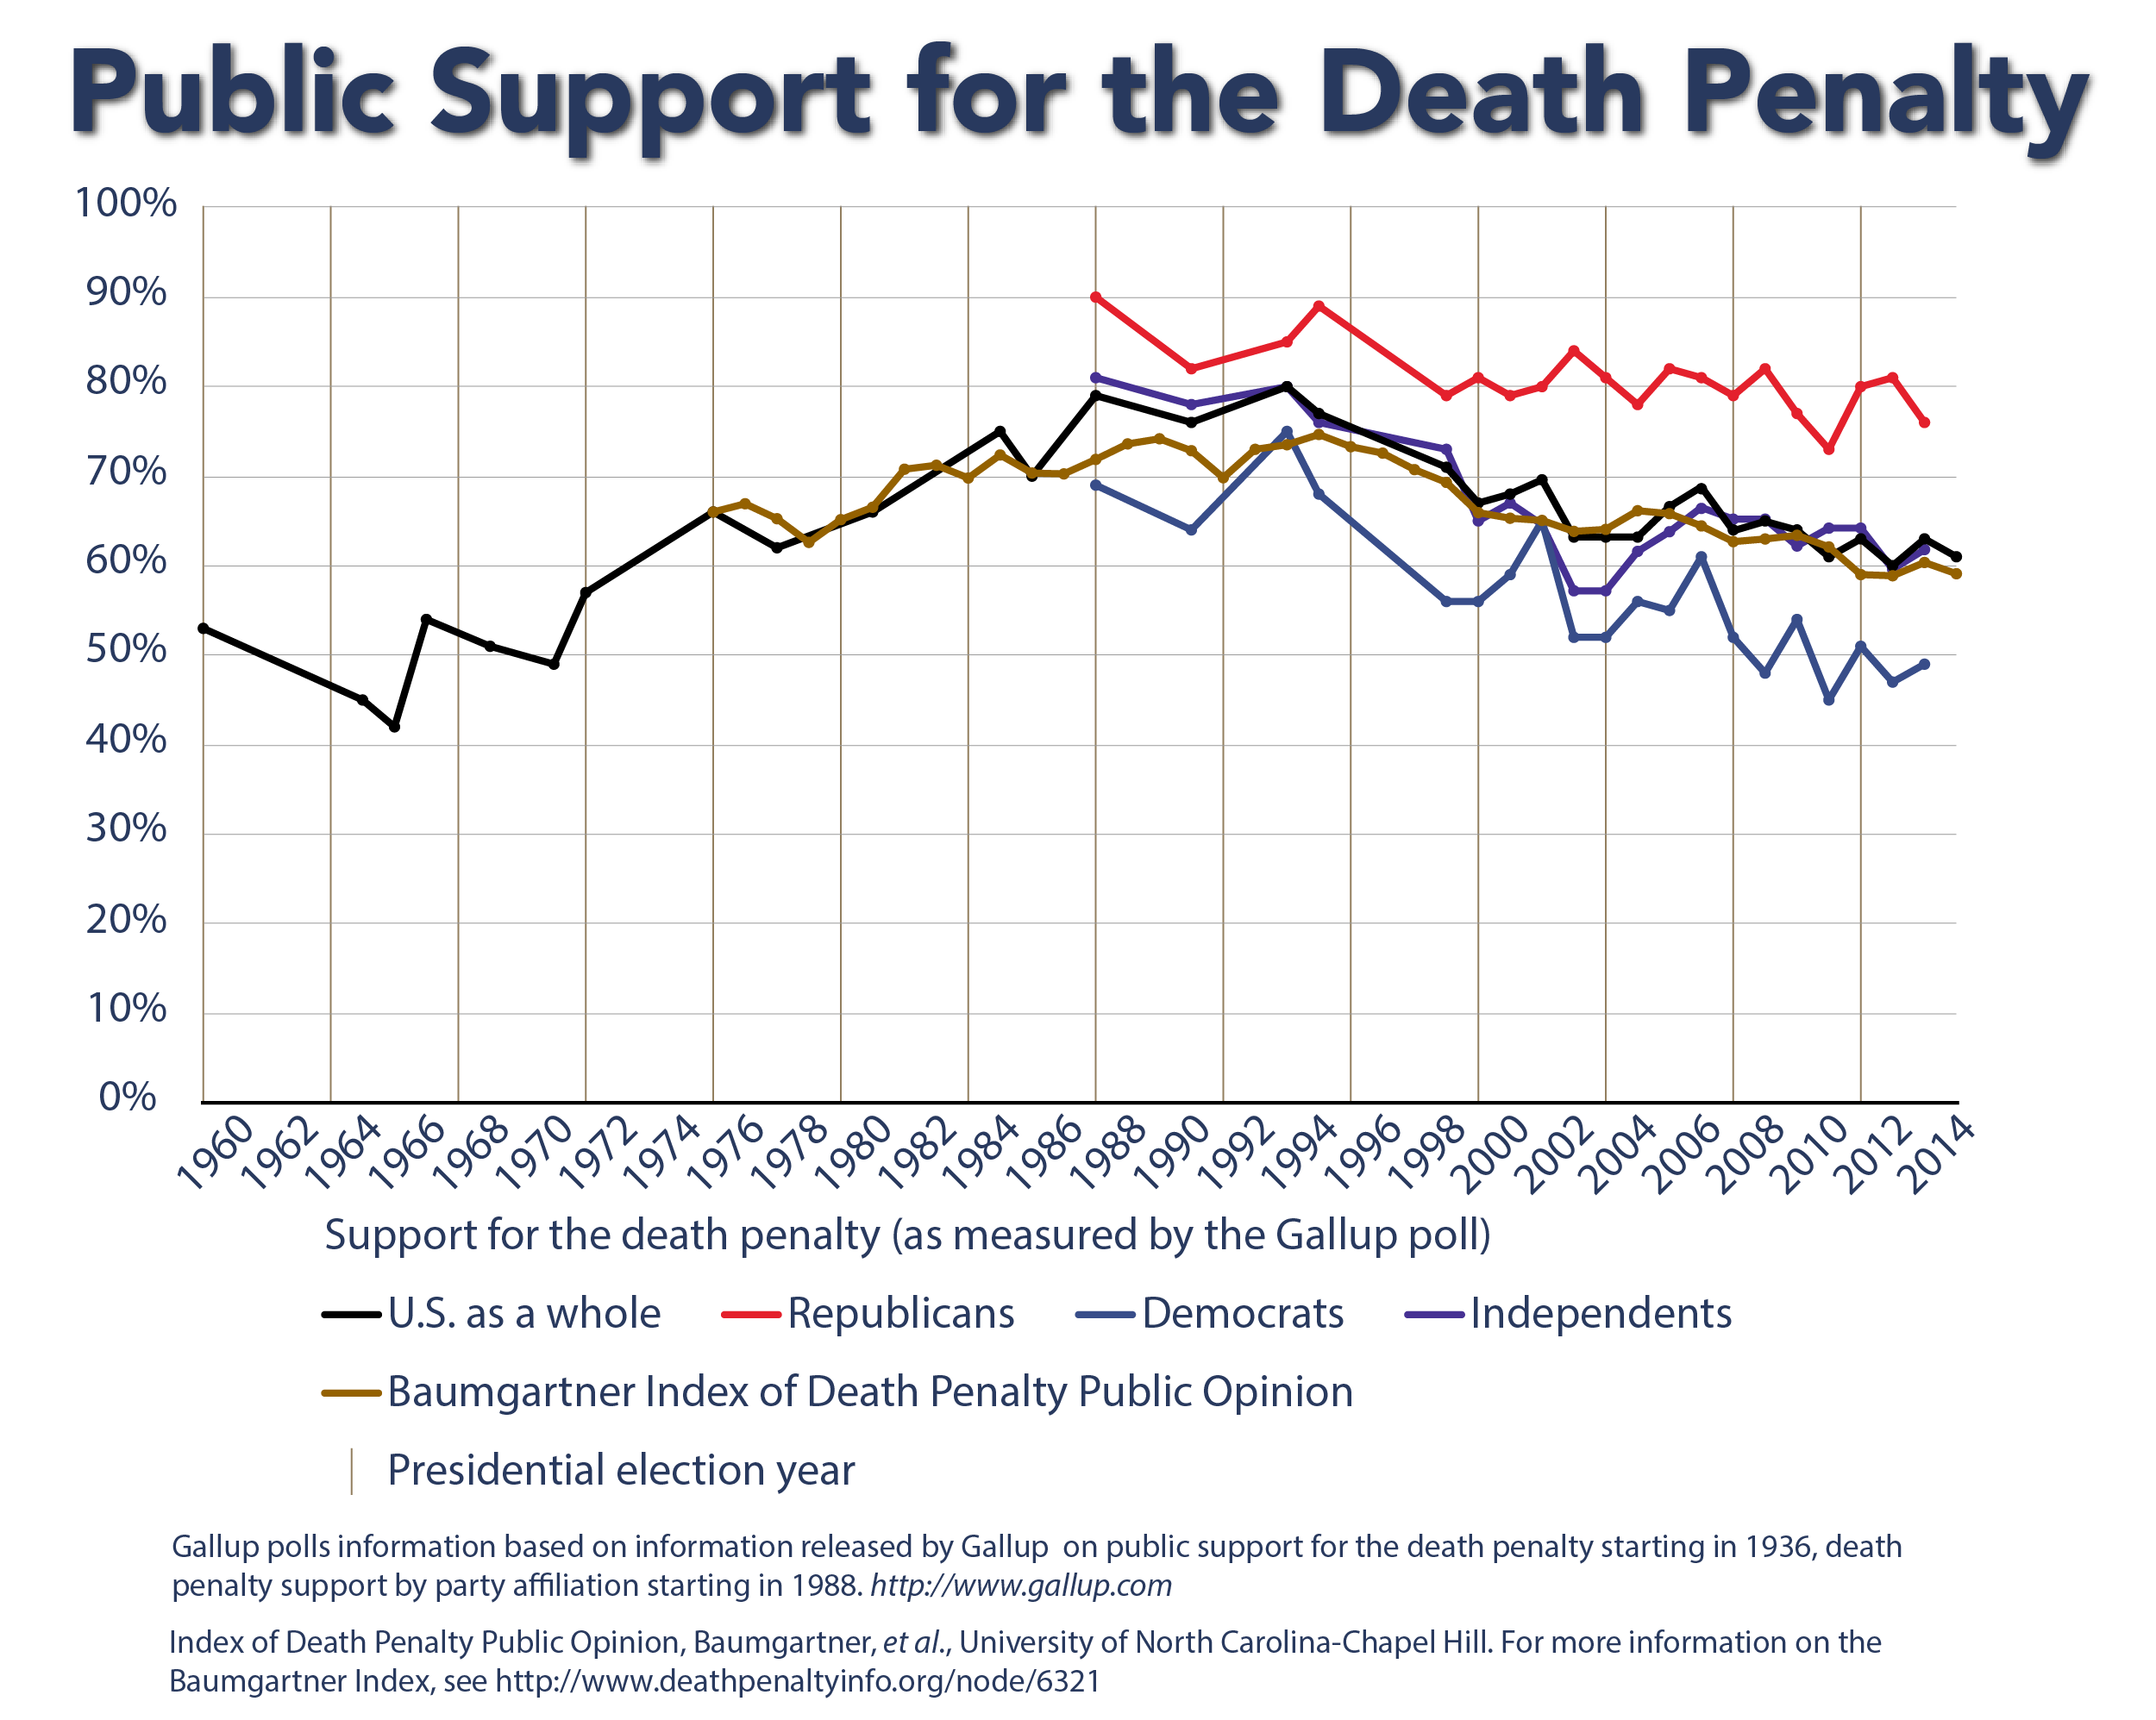 014 Multiopinionchart Death Penalty Research Paper Imposing Ideas Full